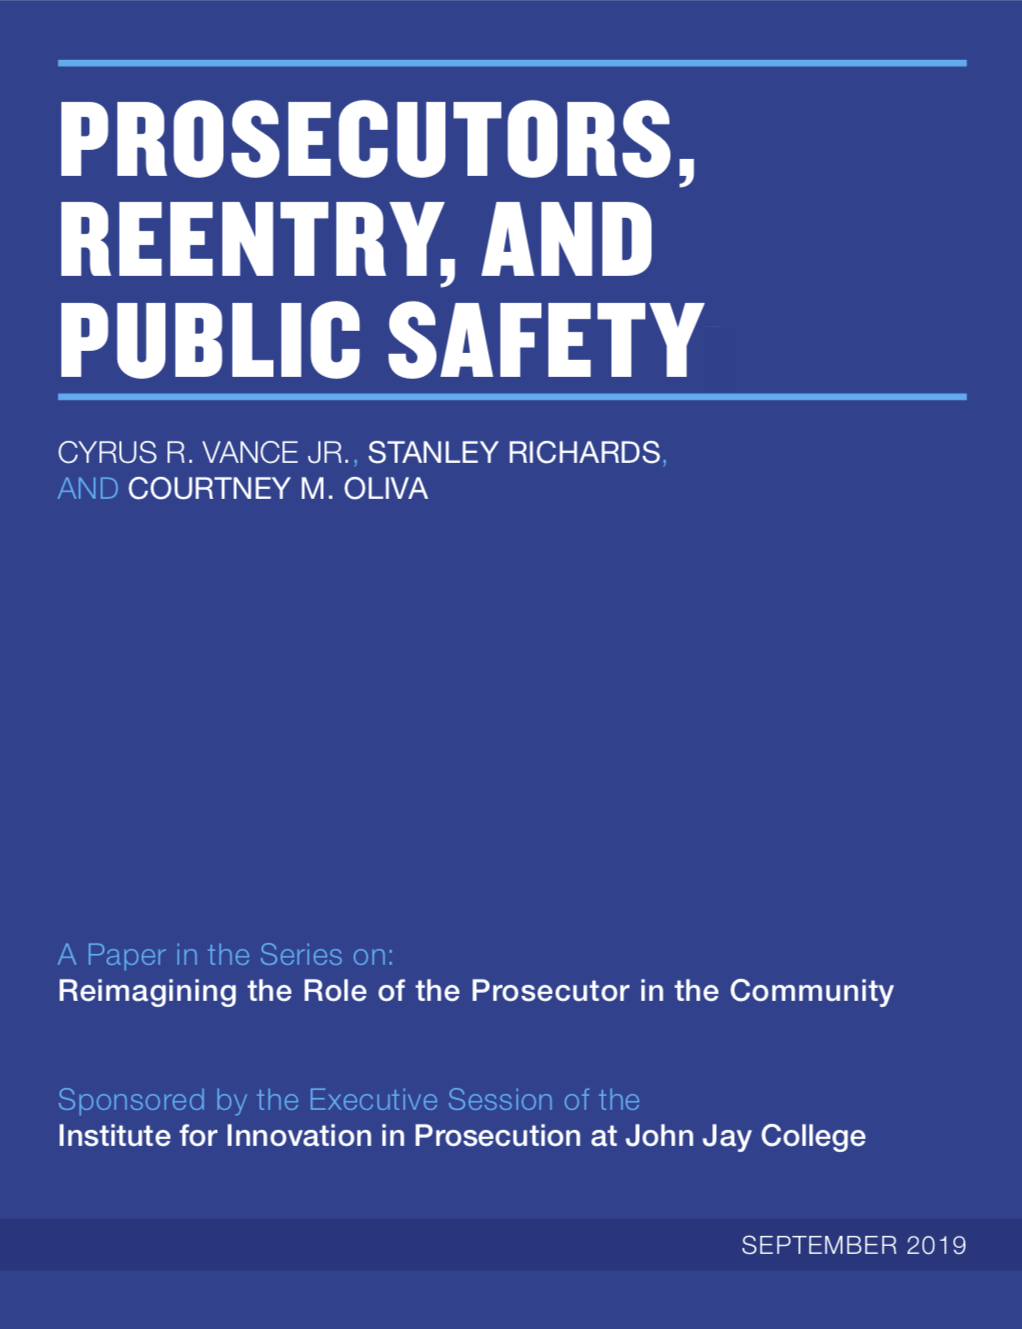 ReEntry Paper Cover.png